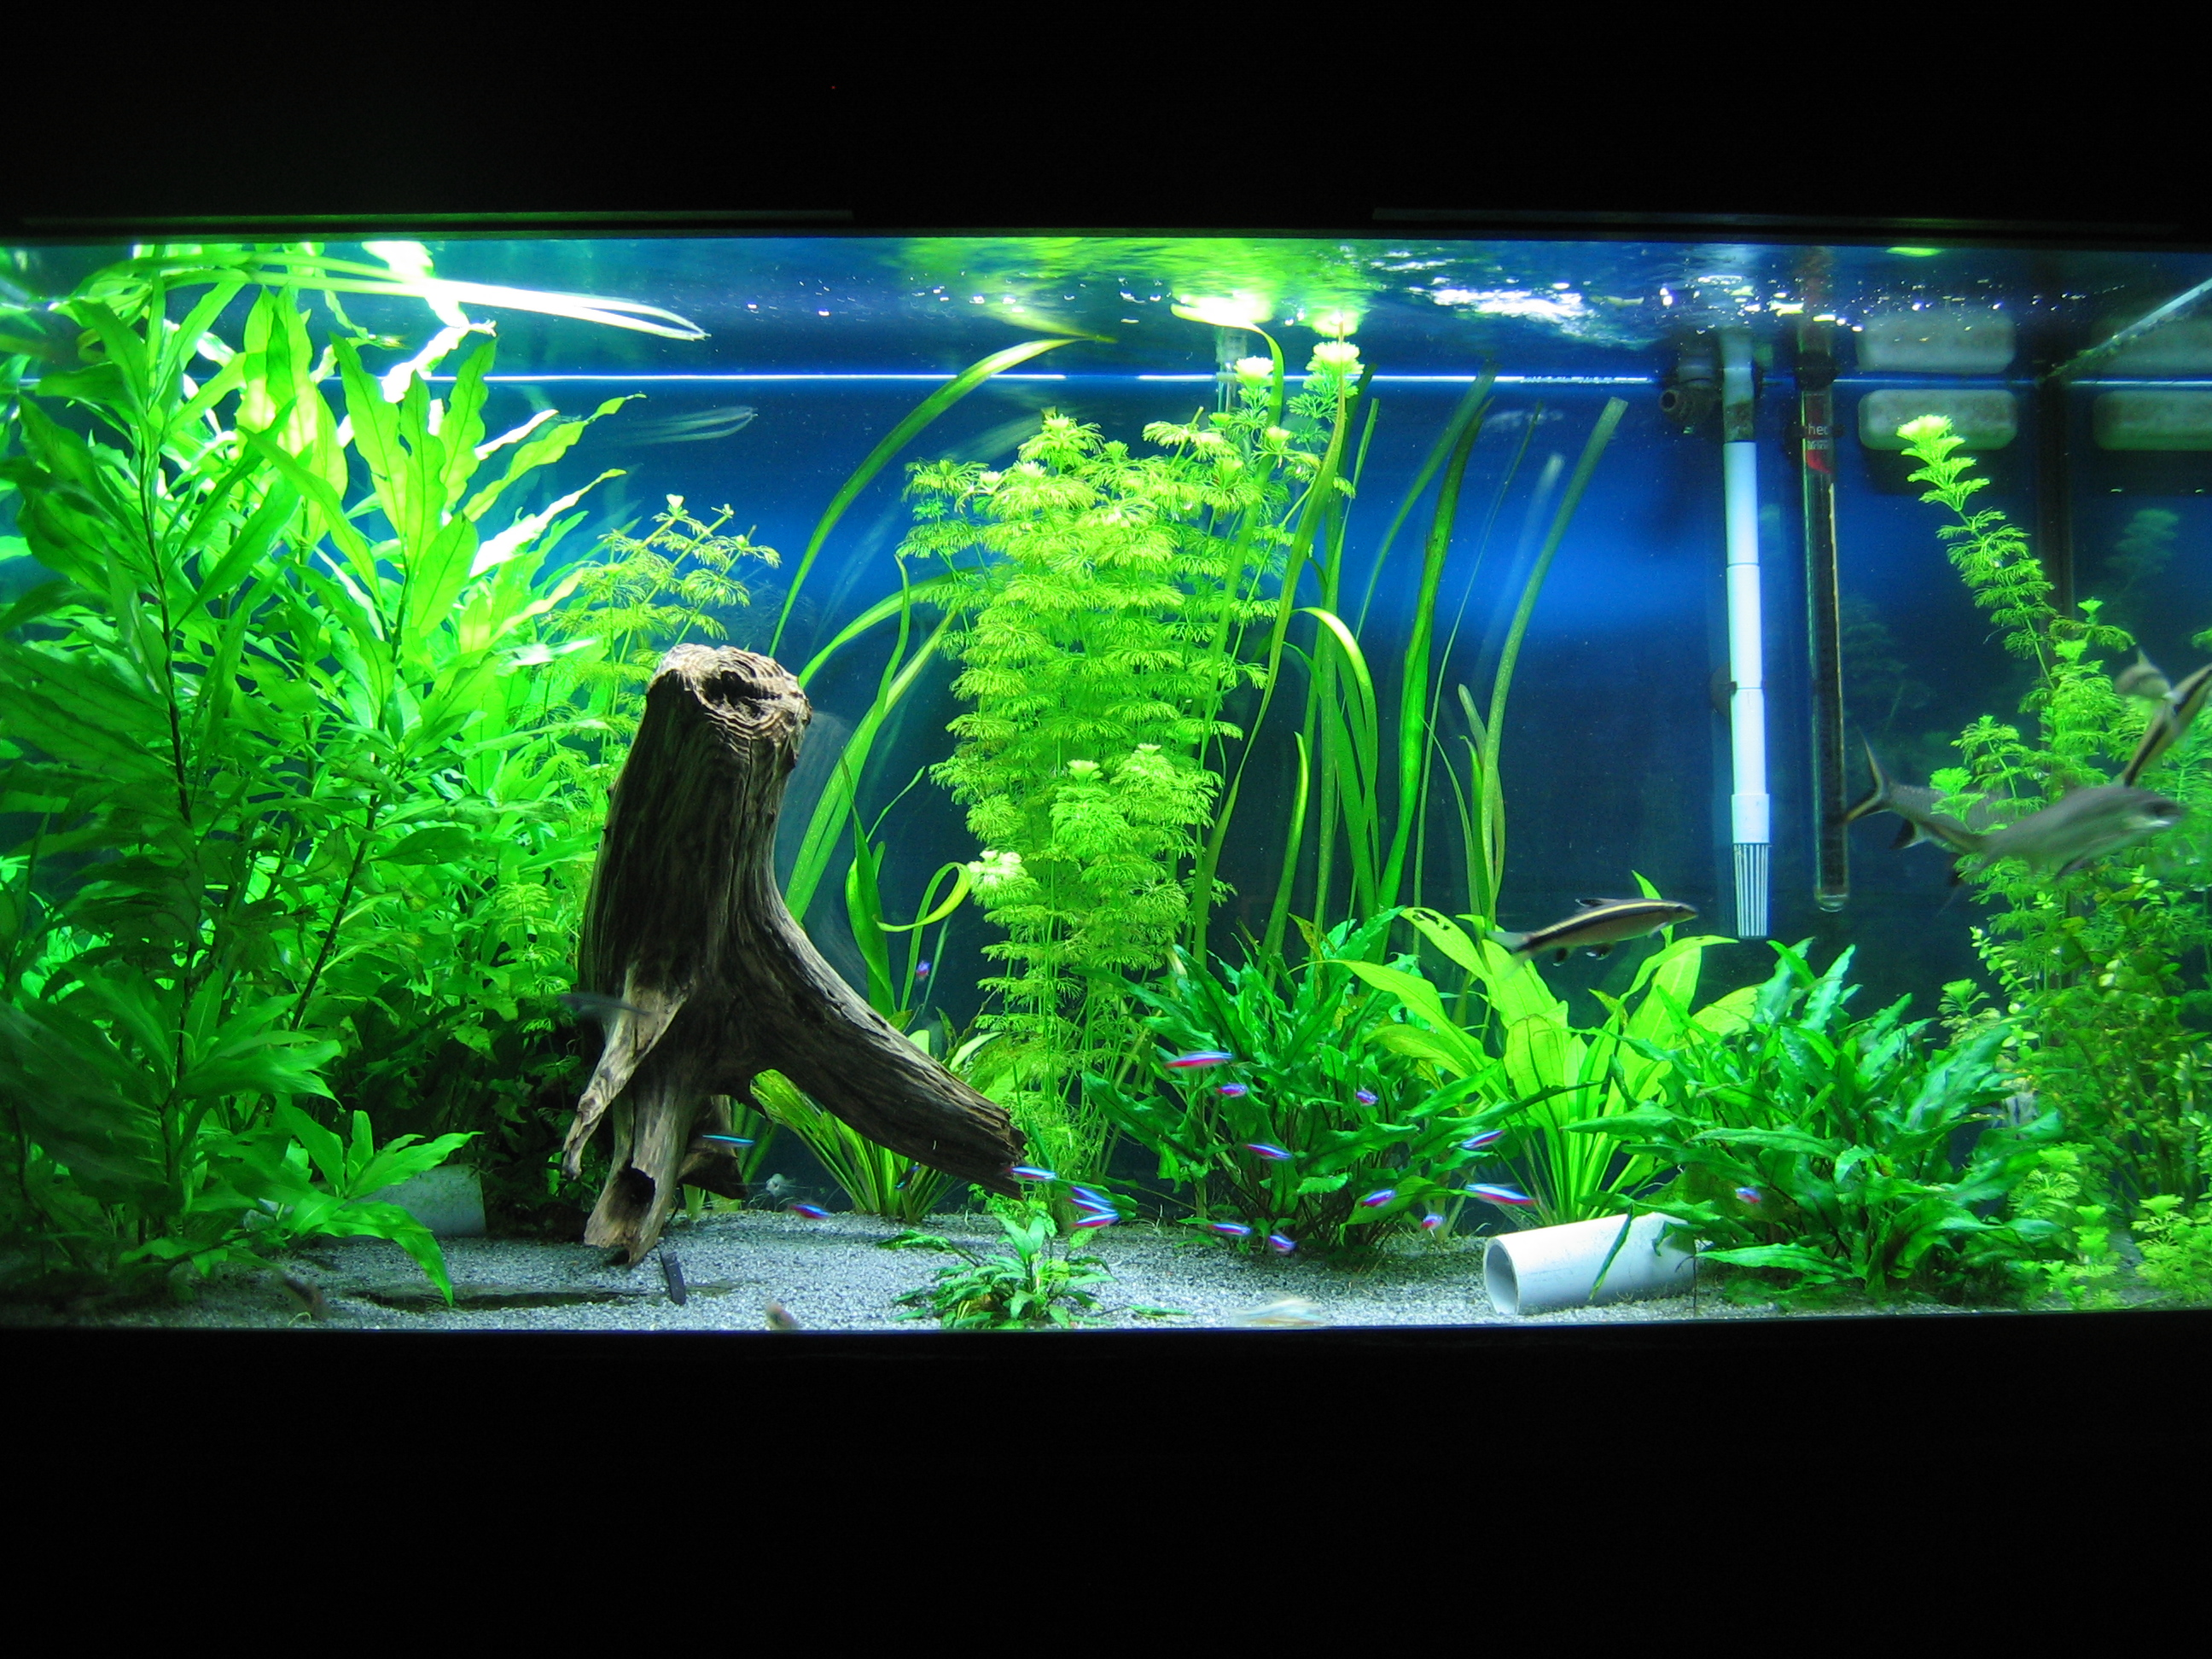 Decoration Interieur Aquarium Aquarium Decorations Interior Decorating Accessories